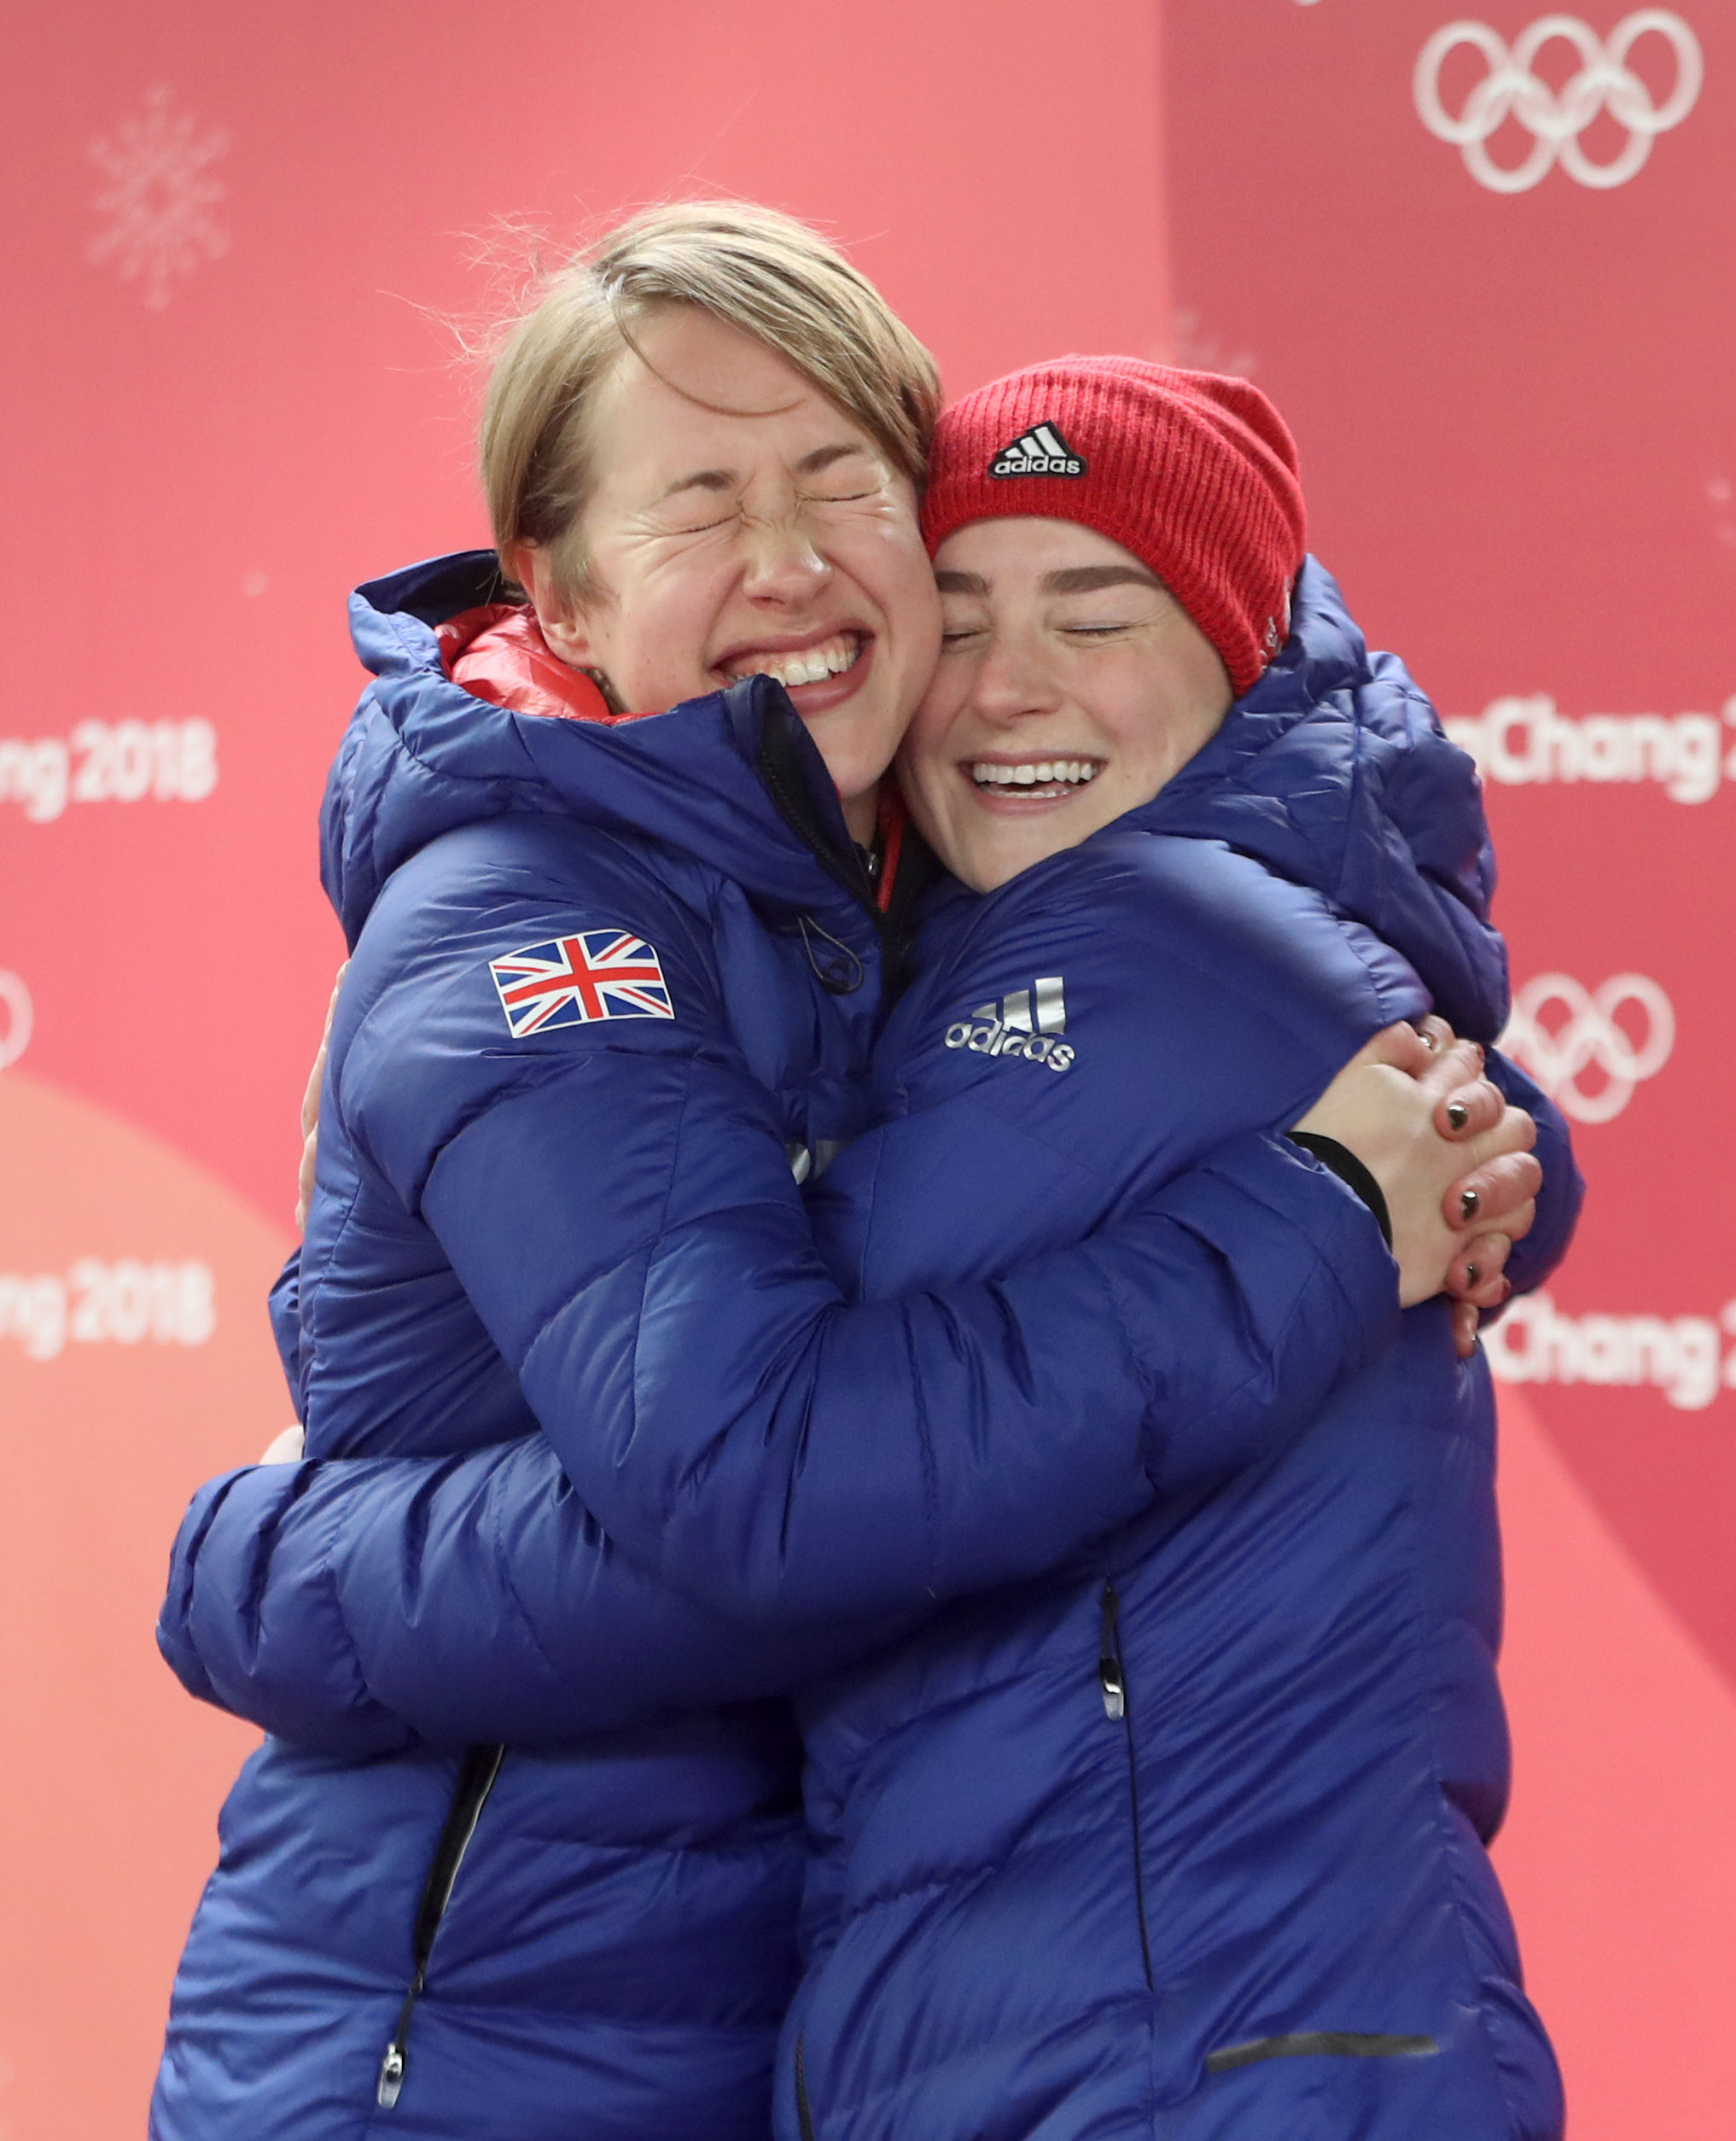 Laura Deas (right) hugs teammate and gold medalist Lizzy Yarnold after their medal success in Pyeongchang